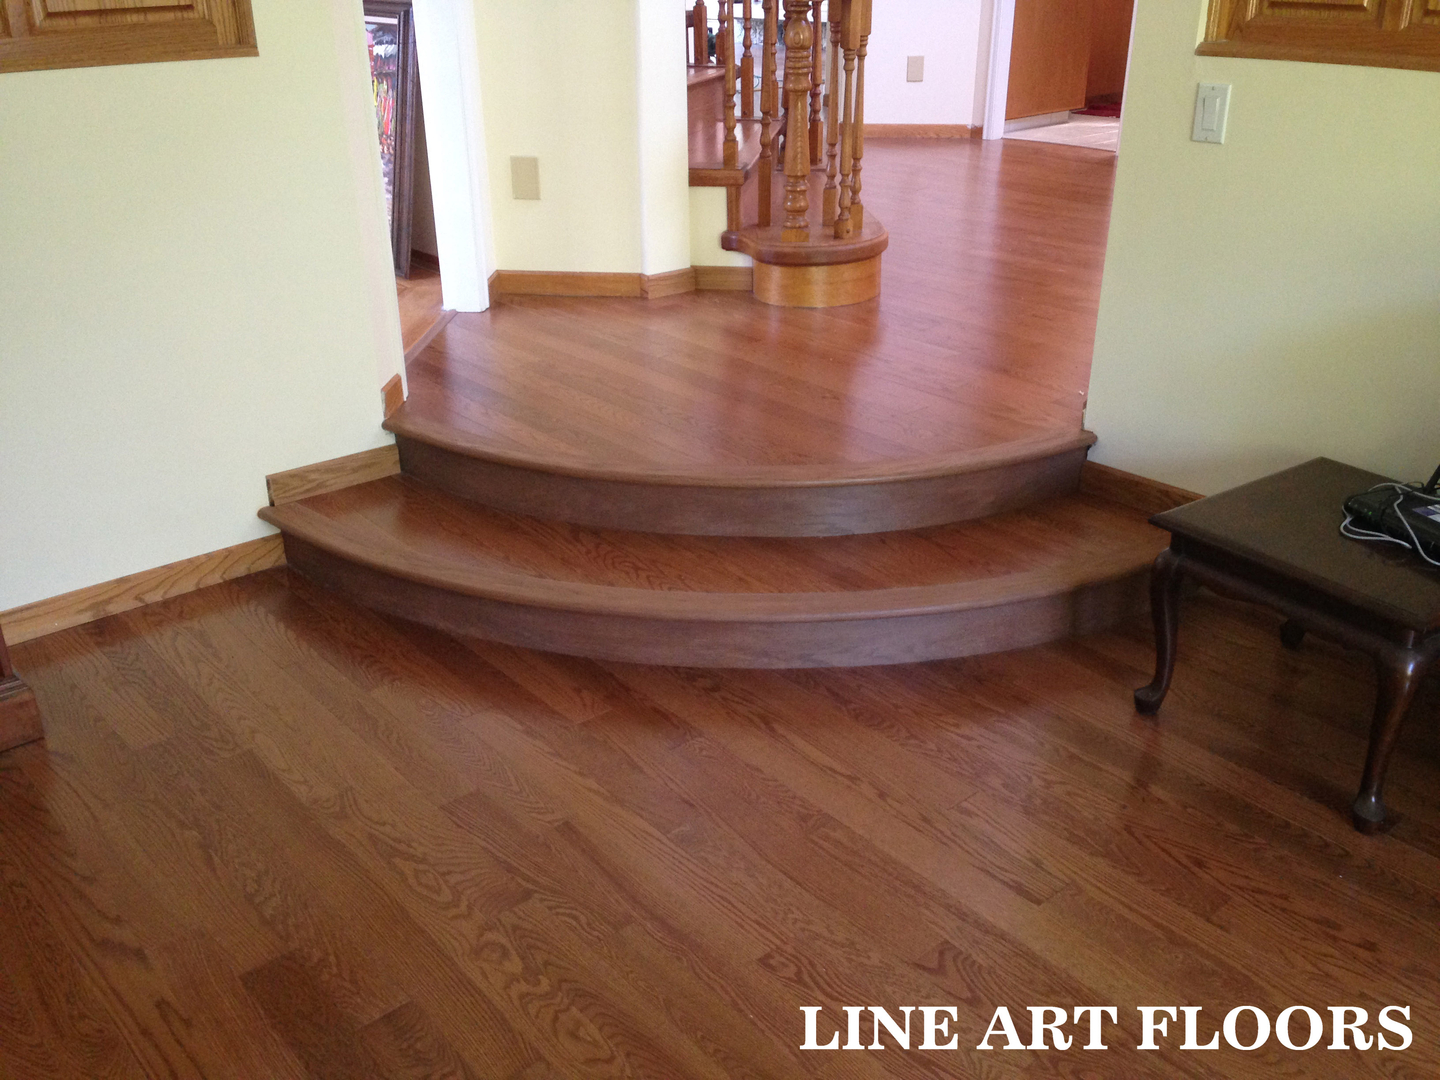 Line Art Floors : 180 degrees radius stair step finish vancouver west